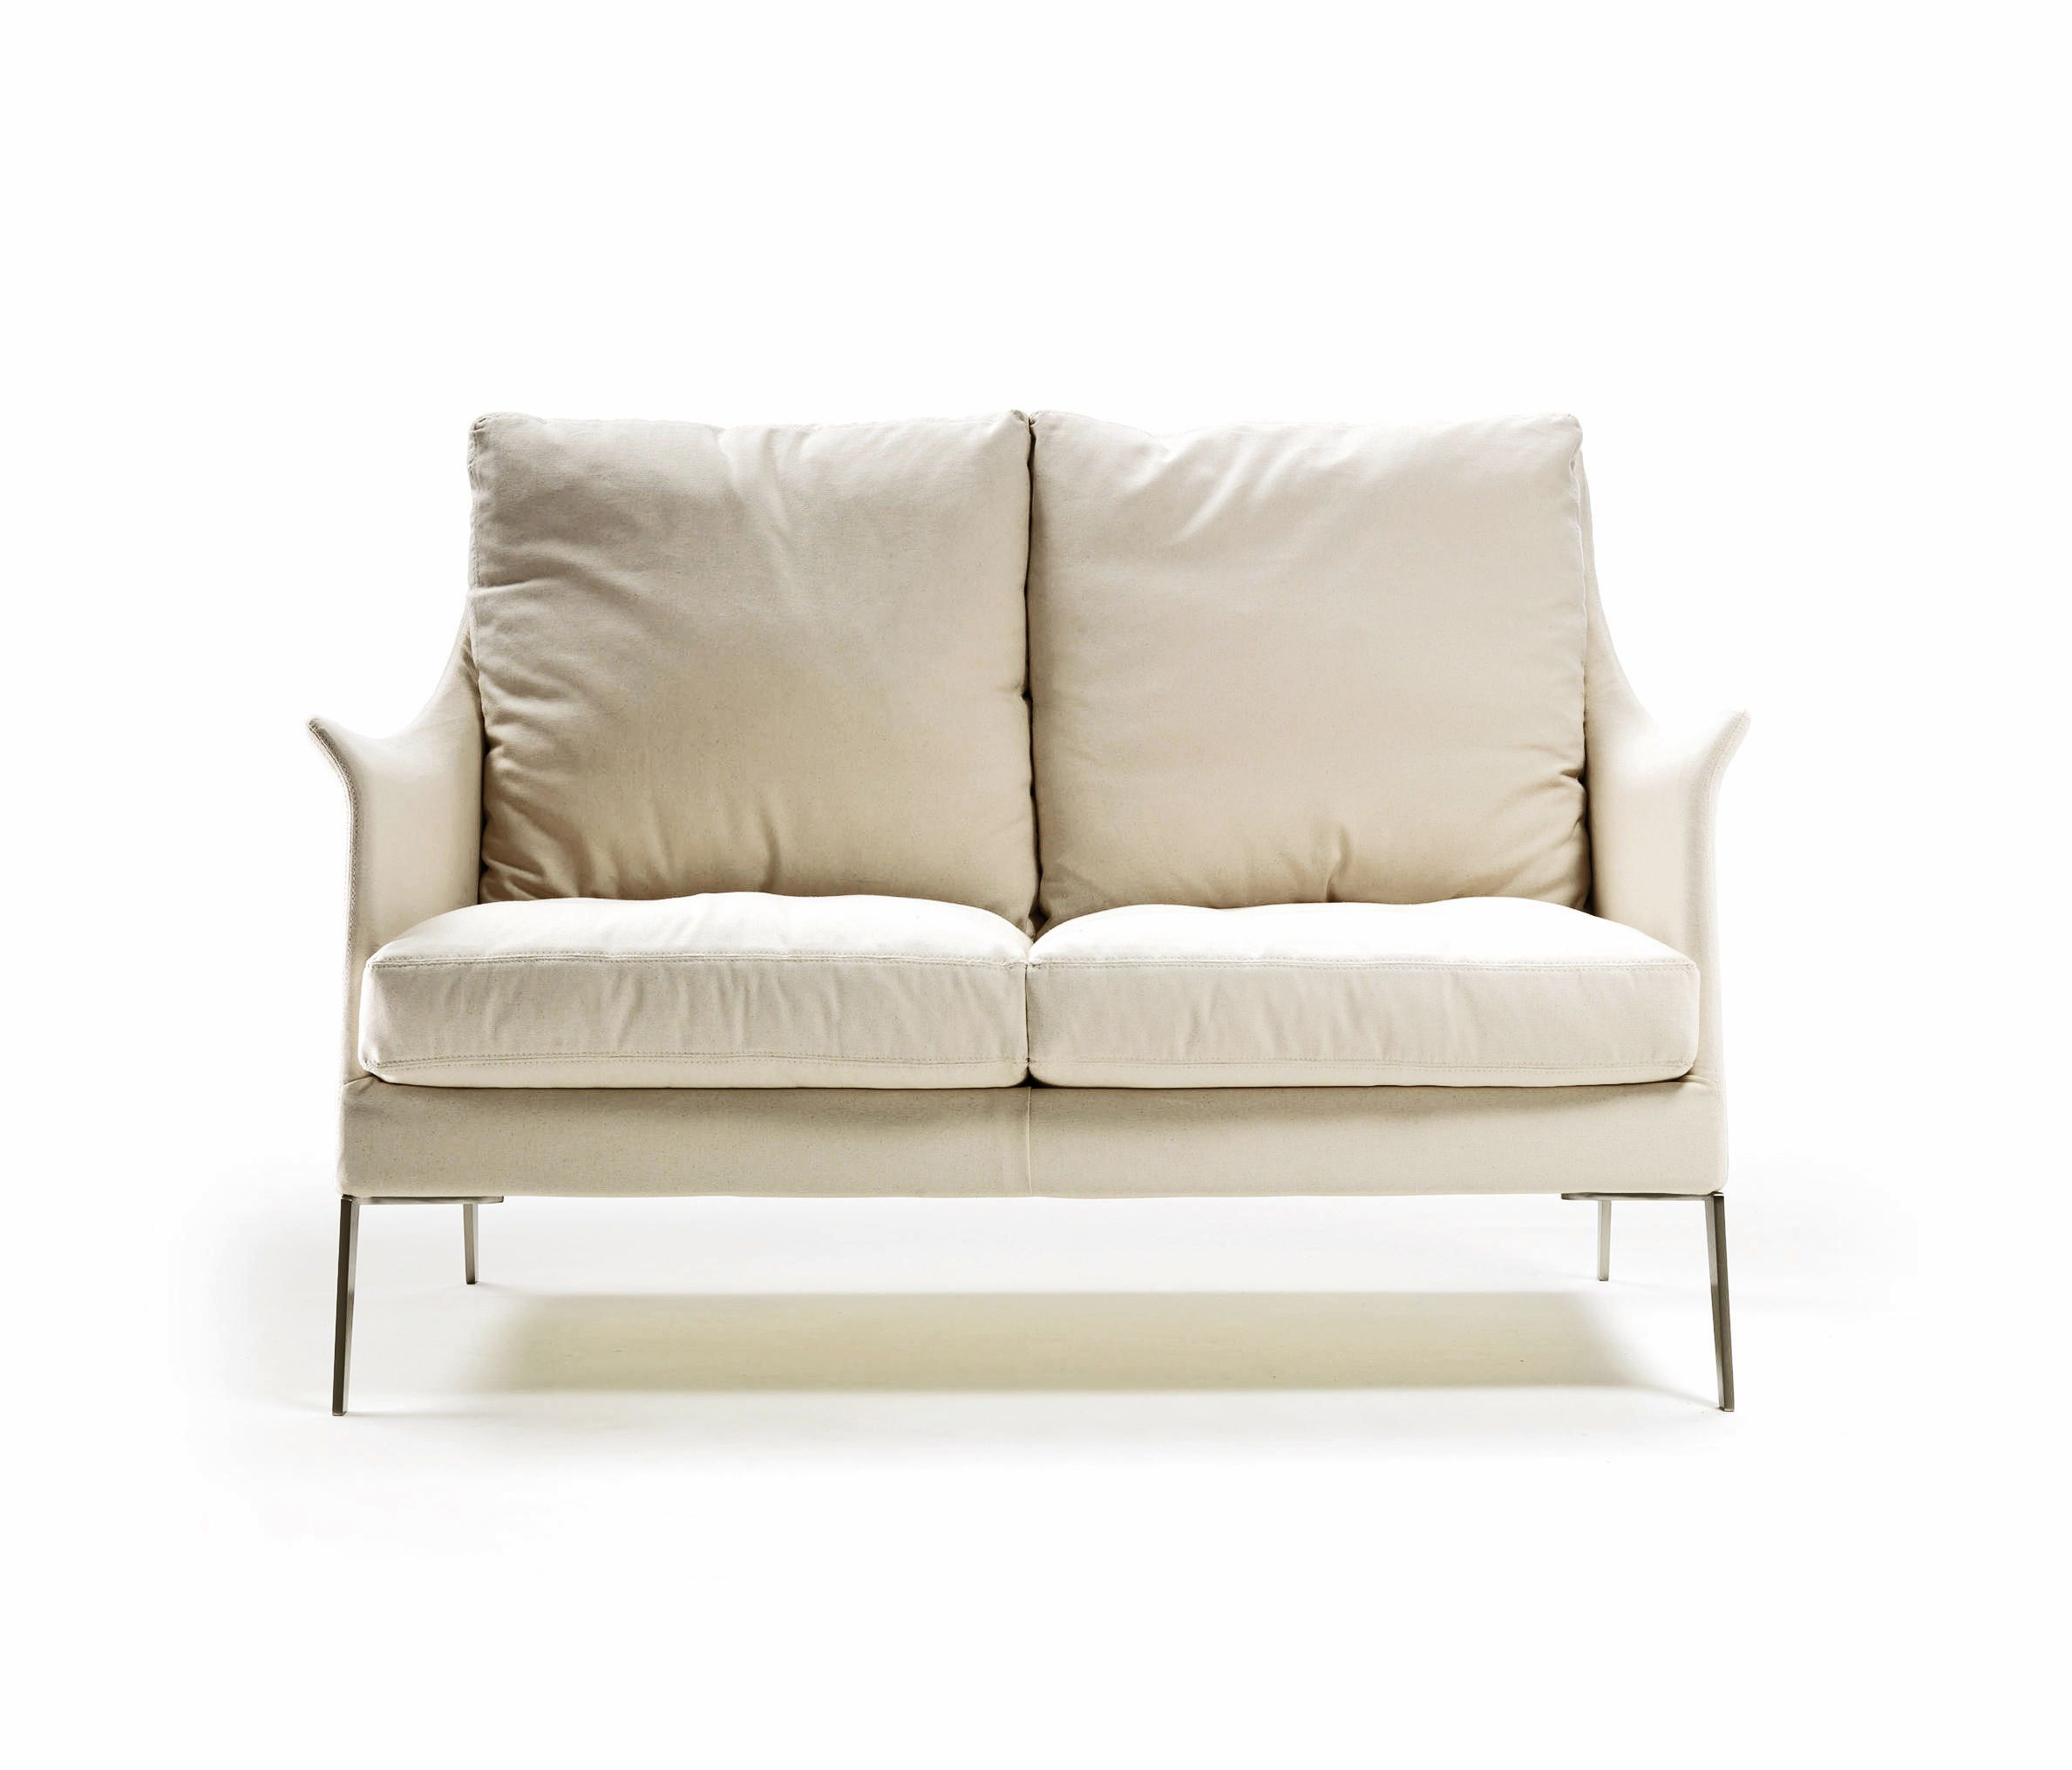 Flexform s Boss Loveseat flexform loveseat leather white